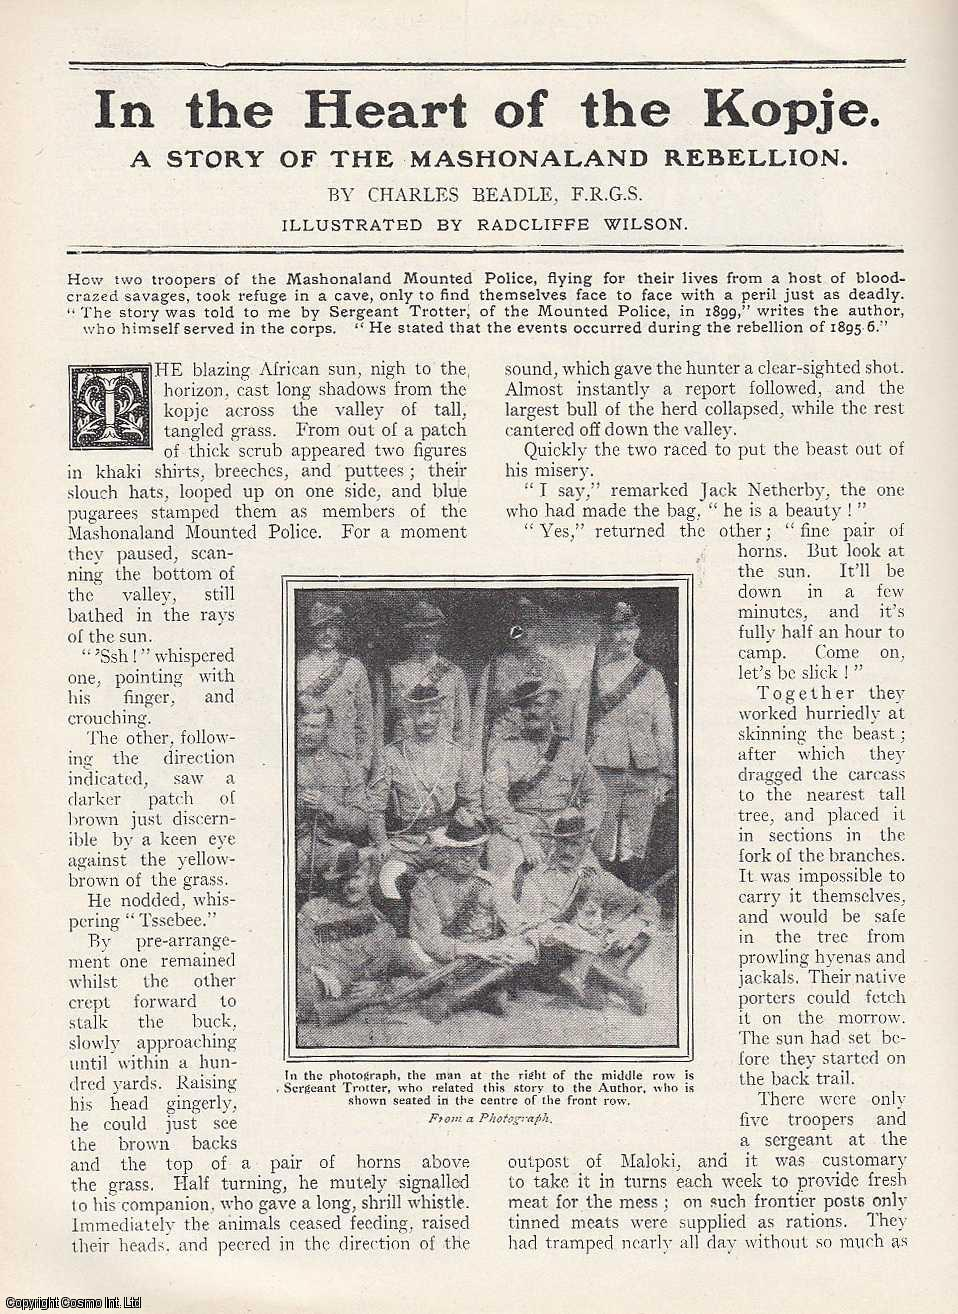 BEADLE, CHARLES - In The Heart of The Kopje. The story of two troopers of the Mashonaland Mounted Police, during the Rebellion of 1895-6. A rare original article from the Wide World Magazine, 1912.